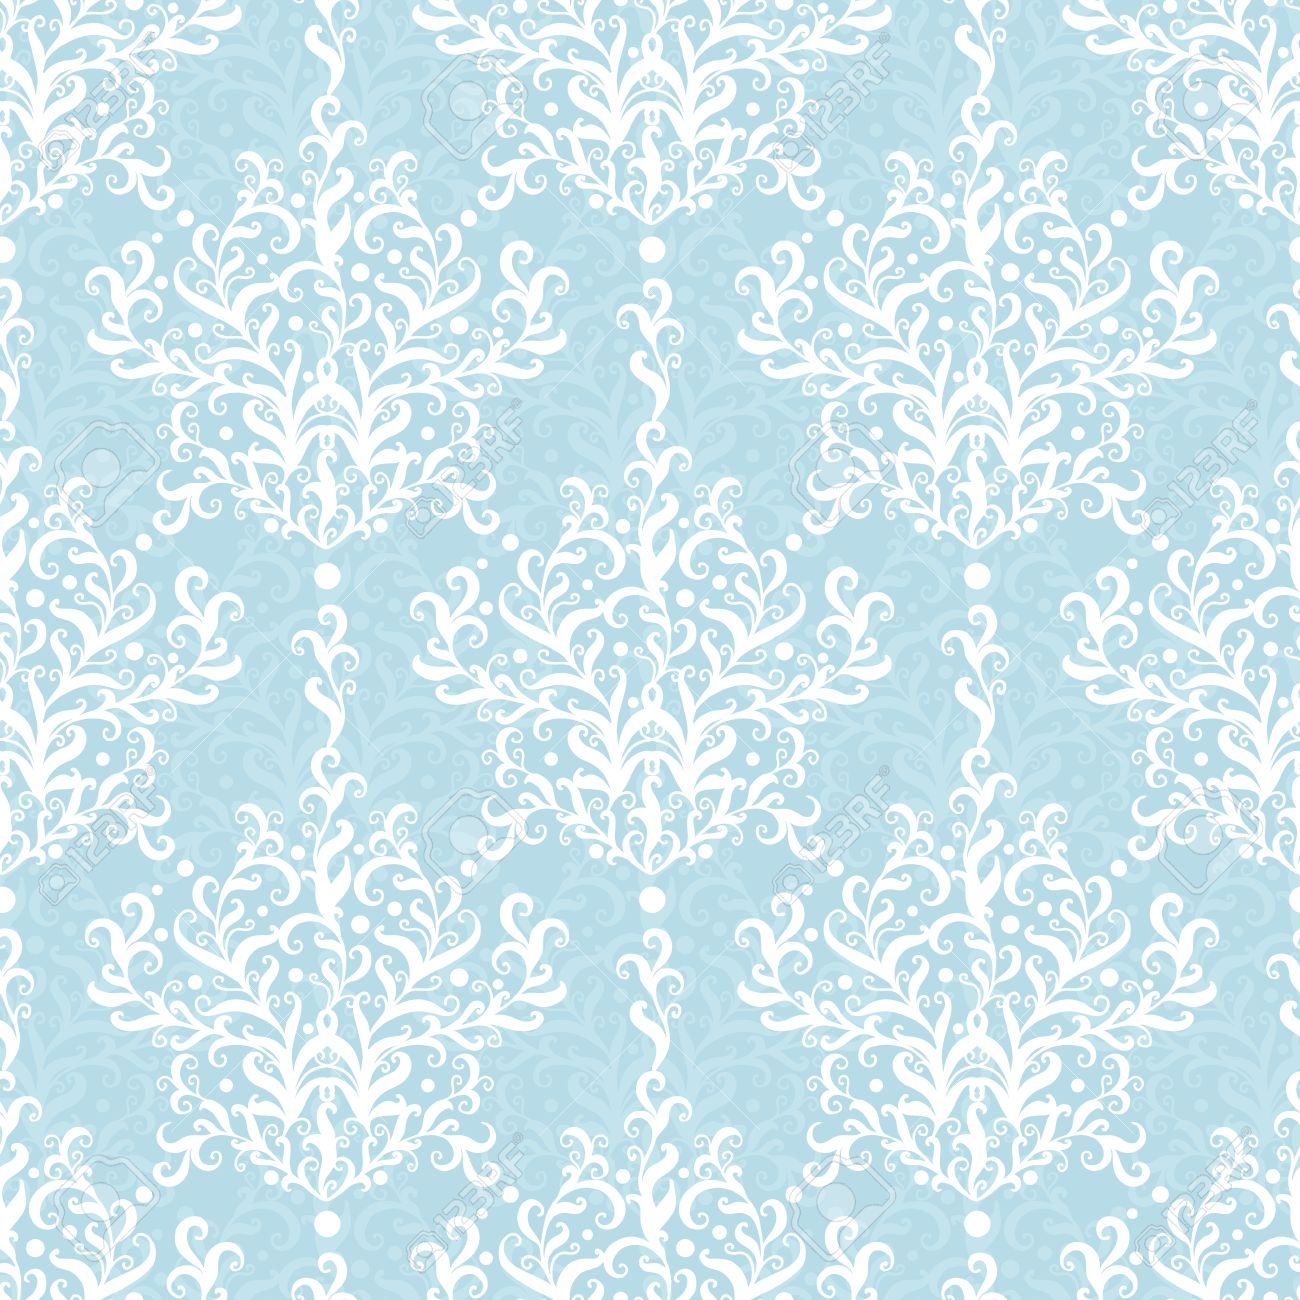 Vintage Vector Light Blue Branches Damask Seamless Pattern